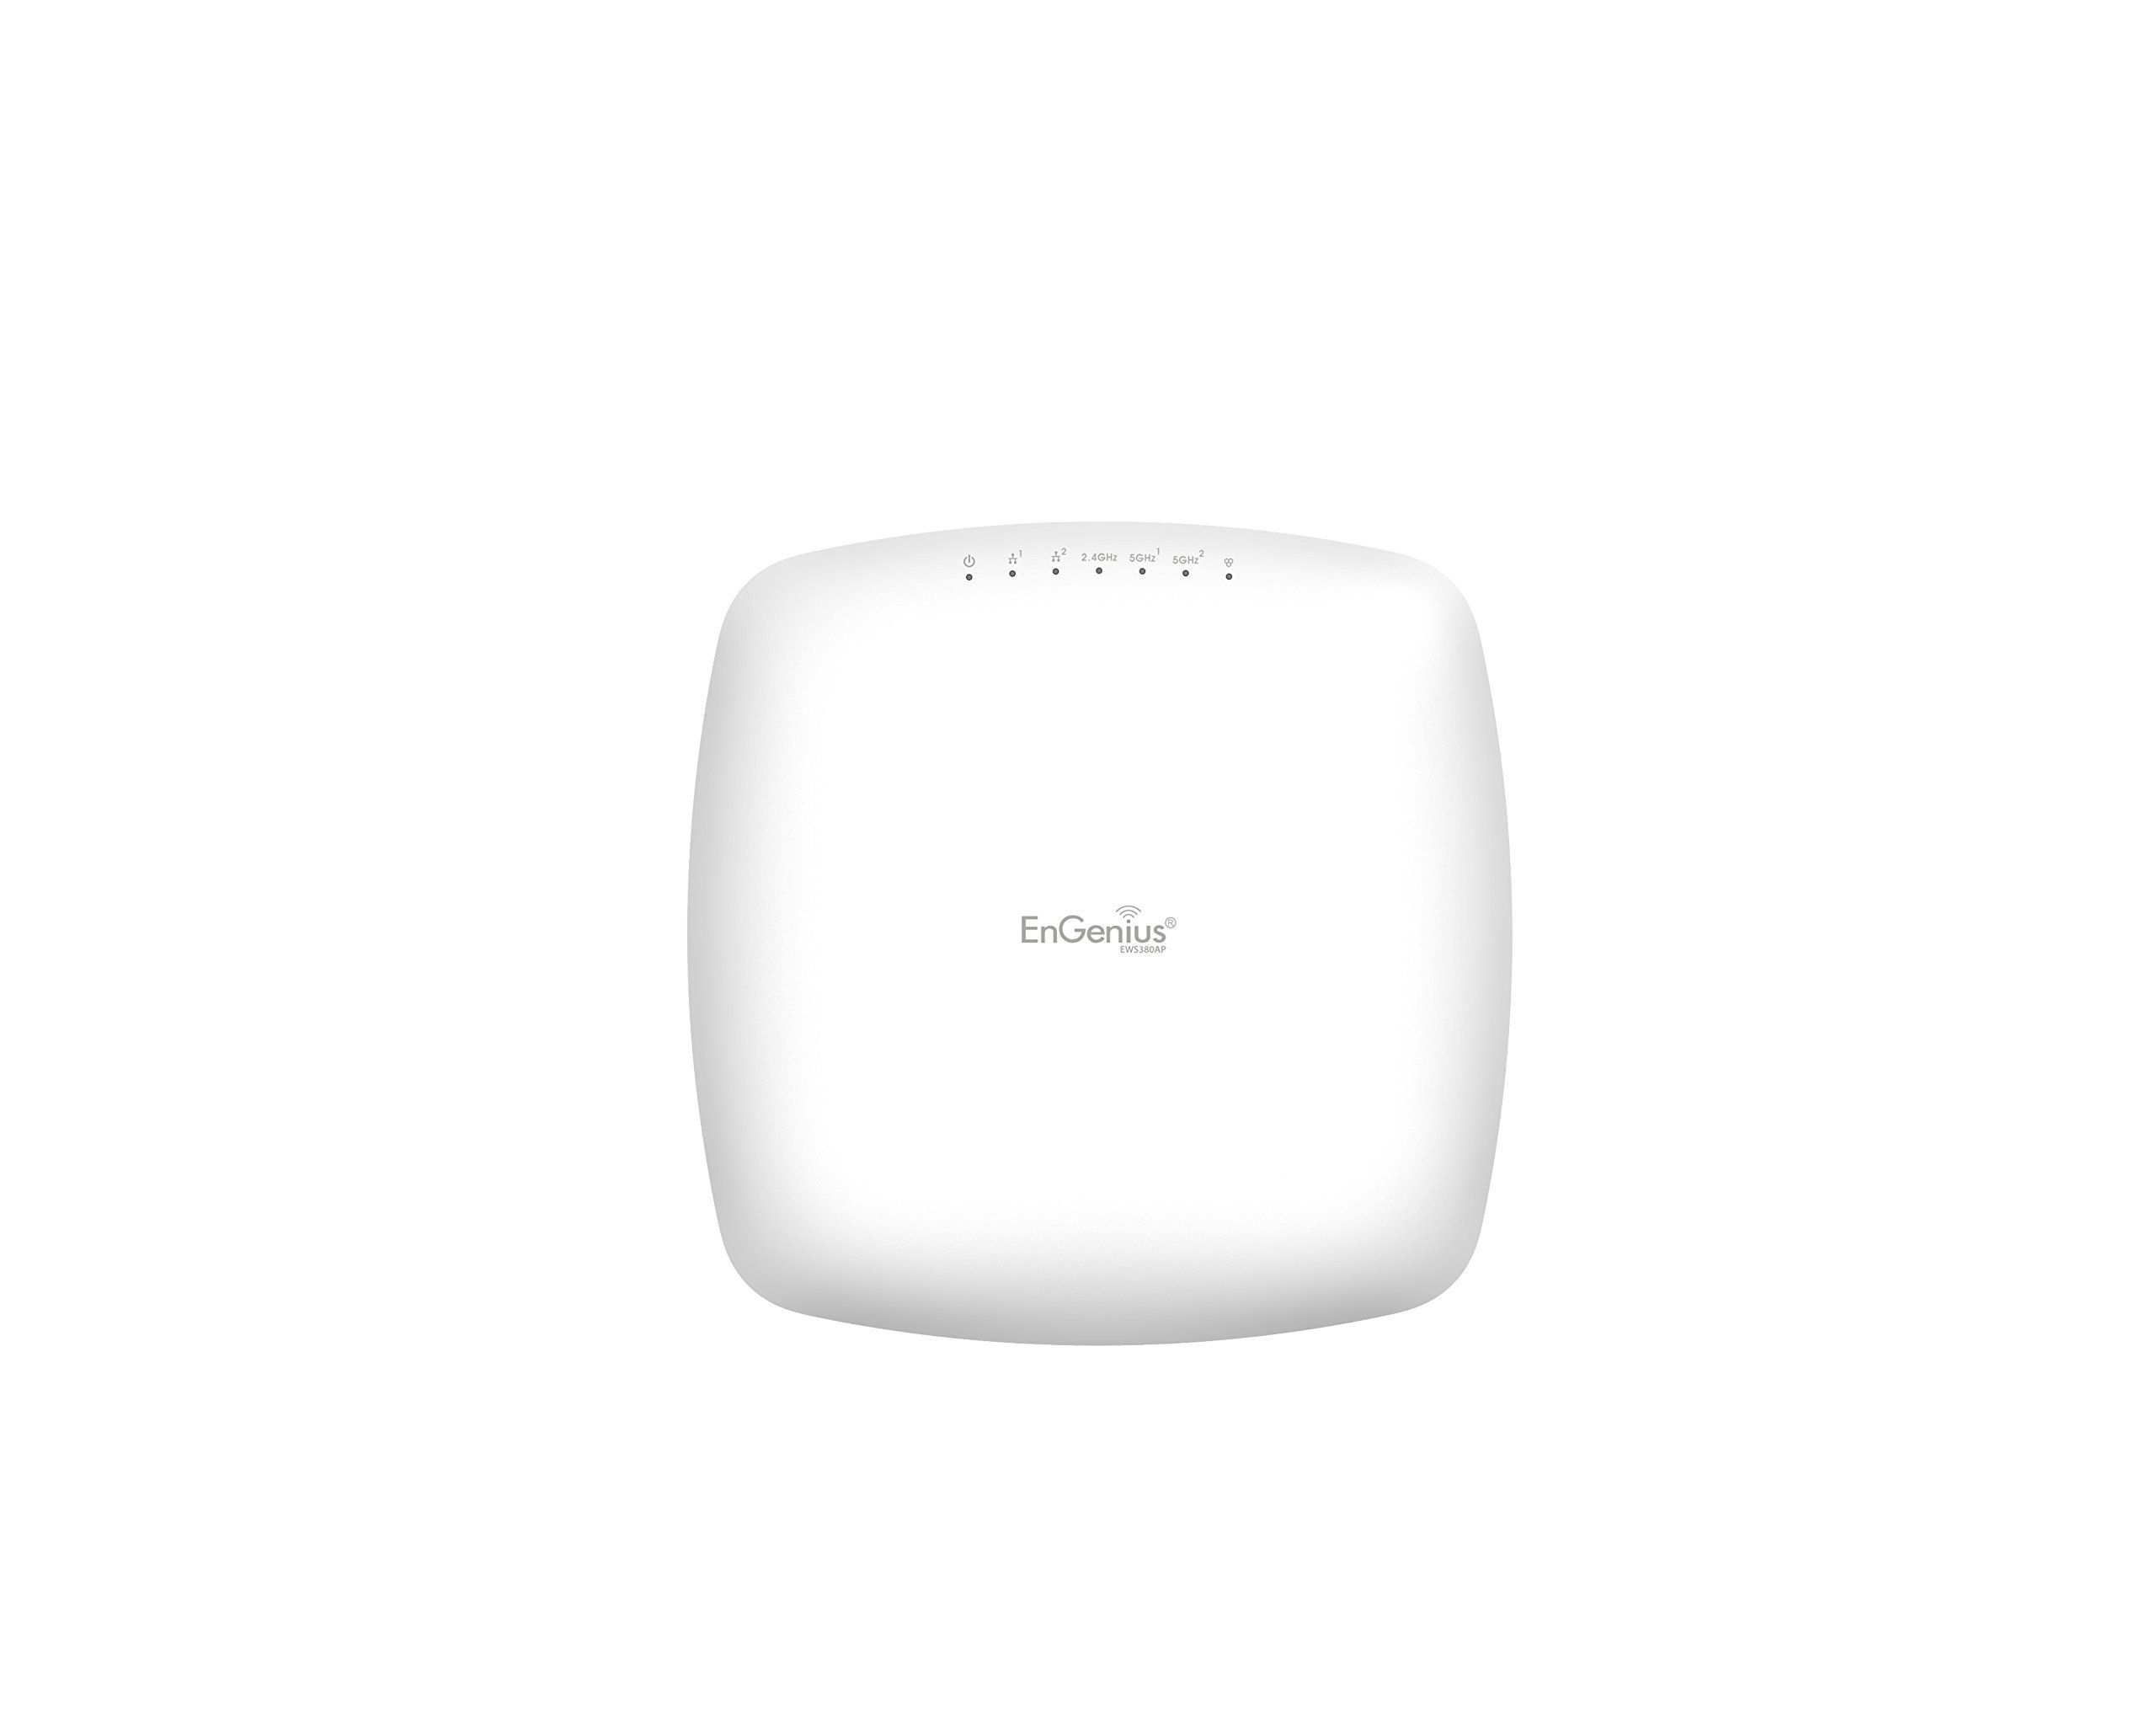 EnGenius Technologies EAP2200 EnGenius EnTurbo Tri-Band 11ac Wave 2 Indoor Wireless Access Point by EnGenius